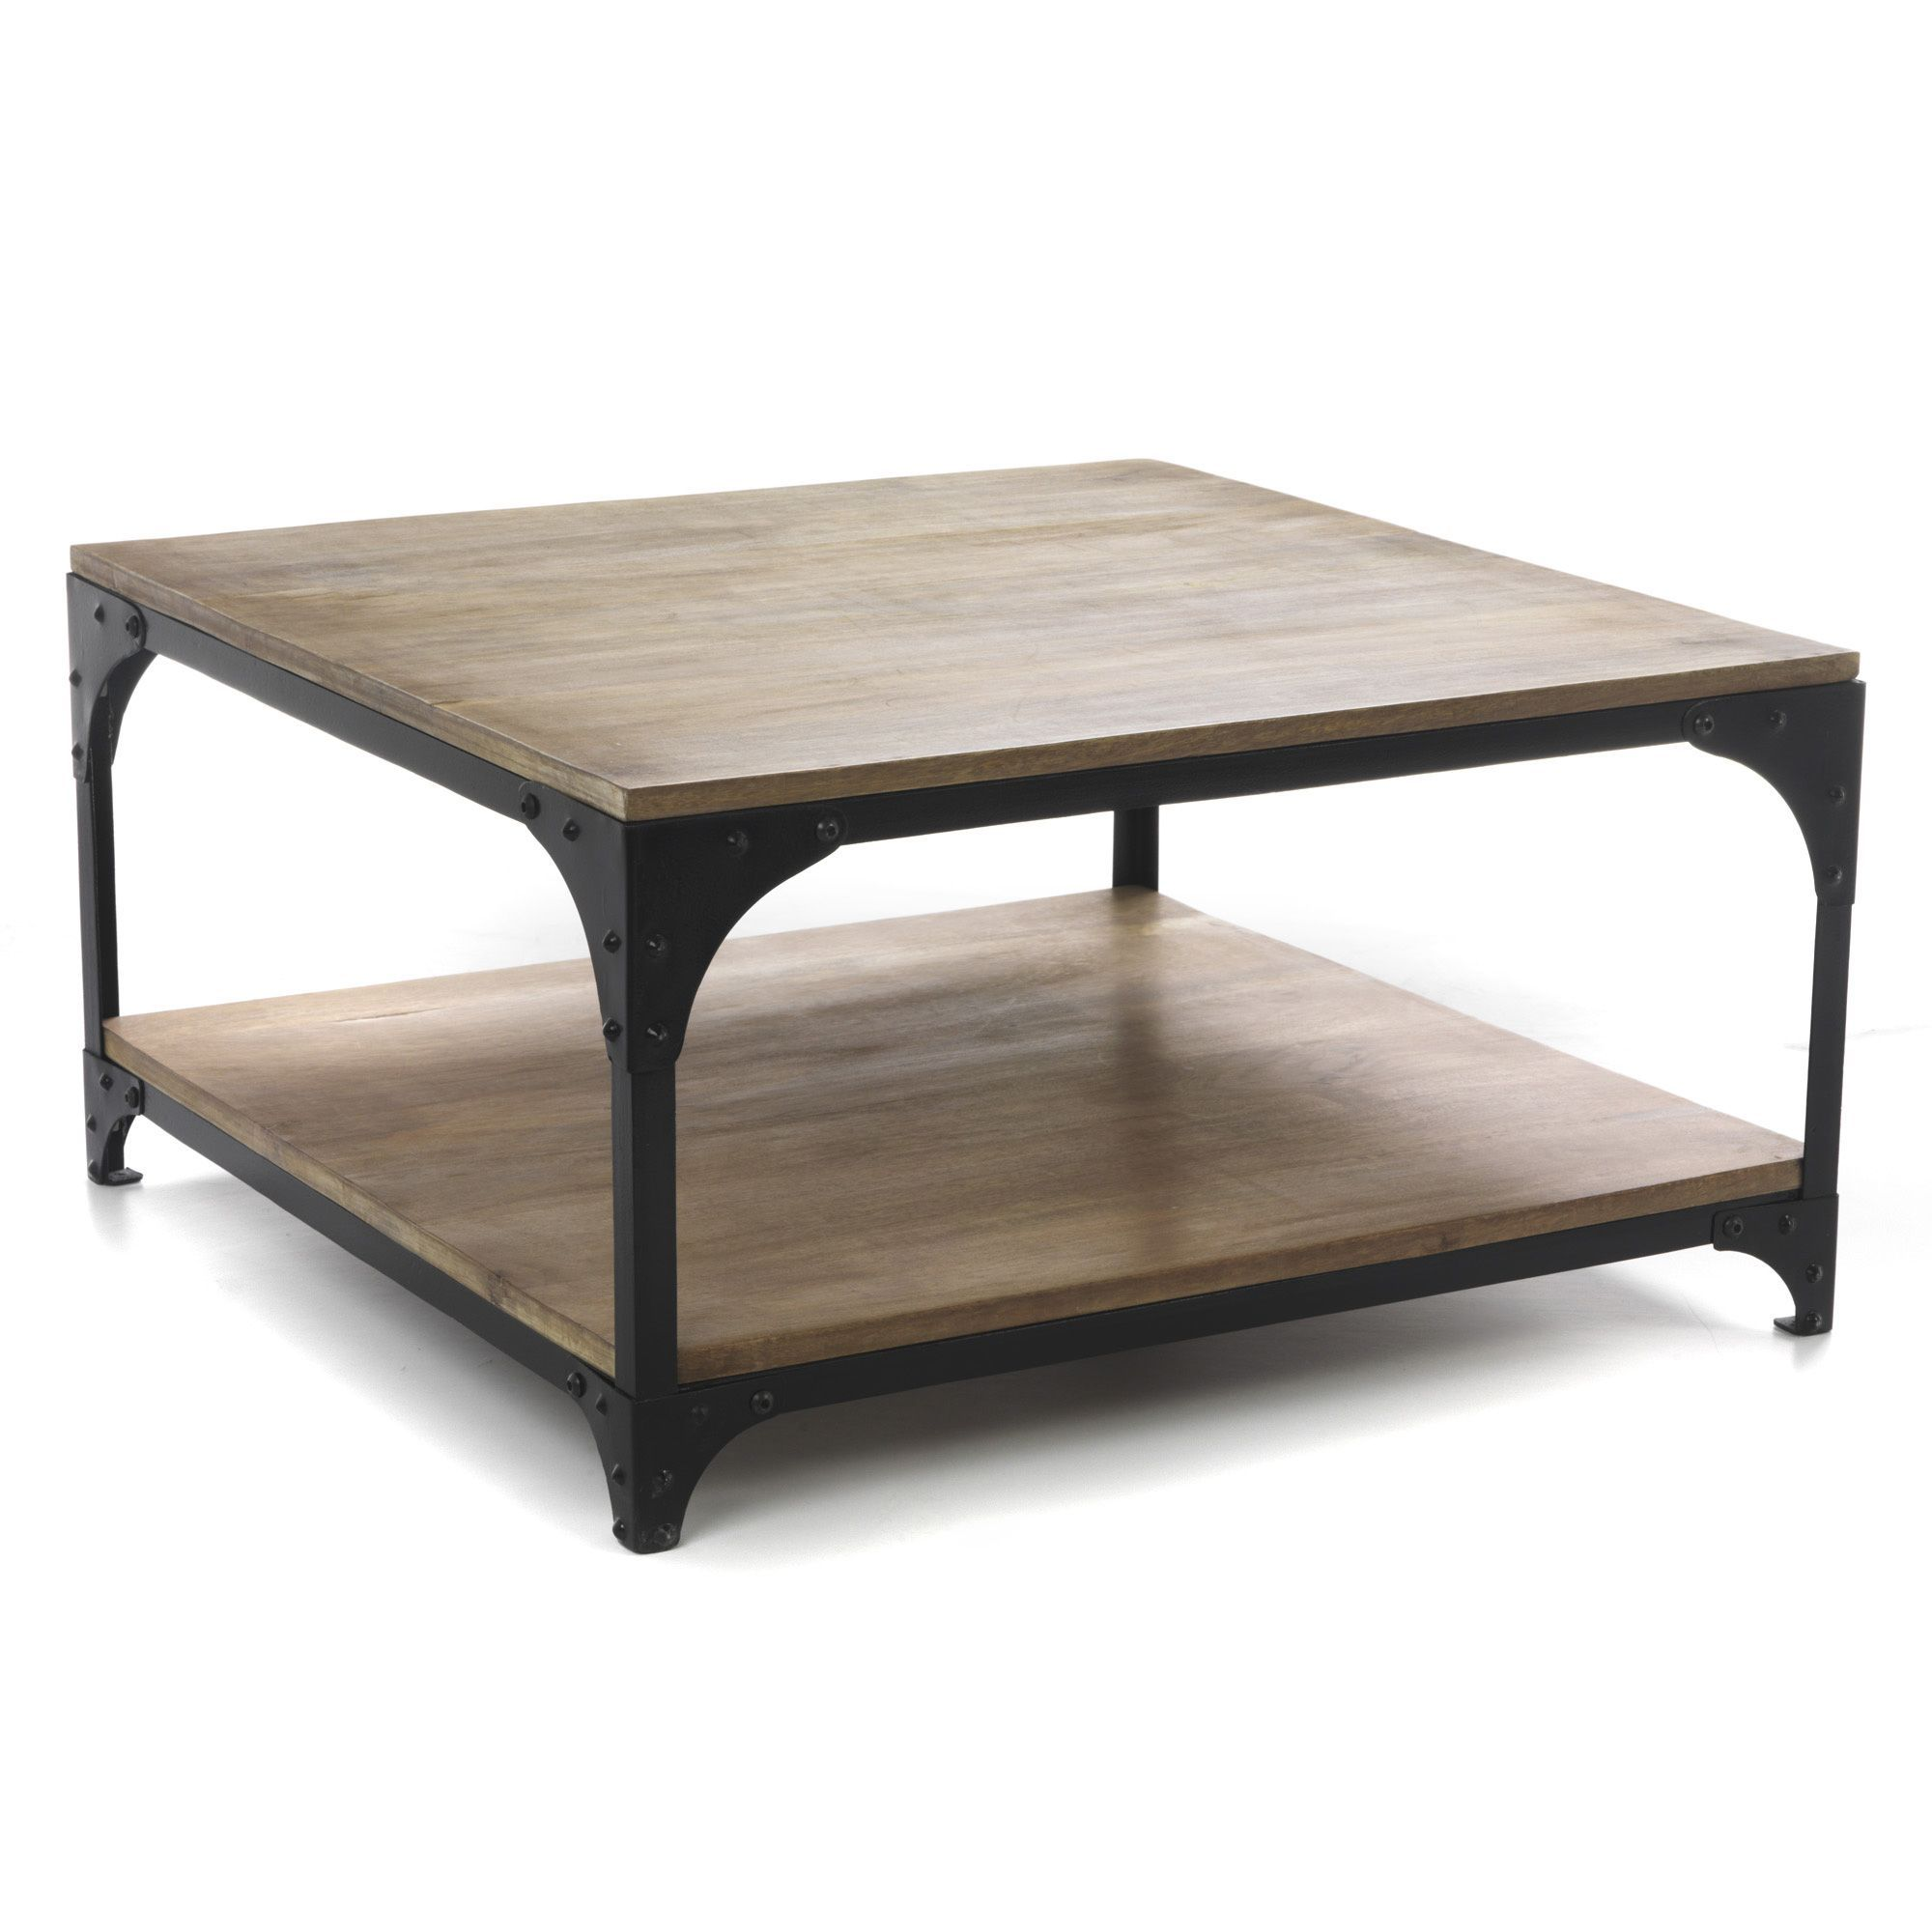 Table basse carr e industrielle naturel new ately les tables basses tab - Table a manger carree ...